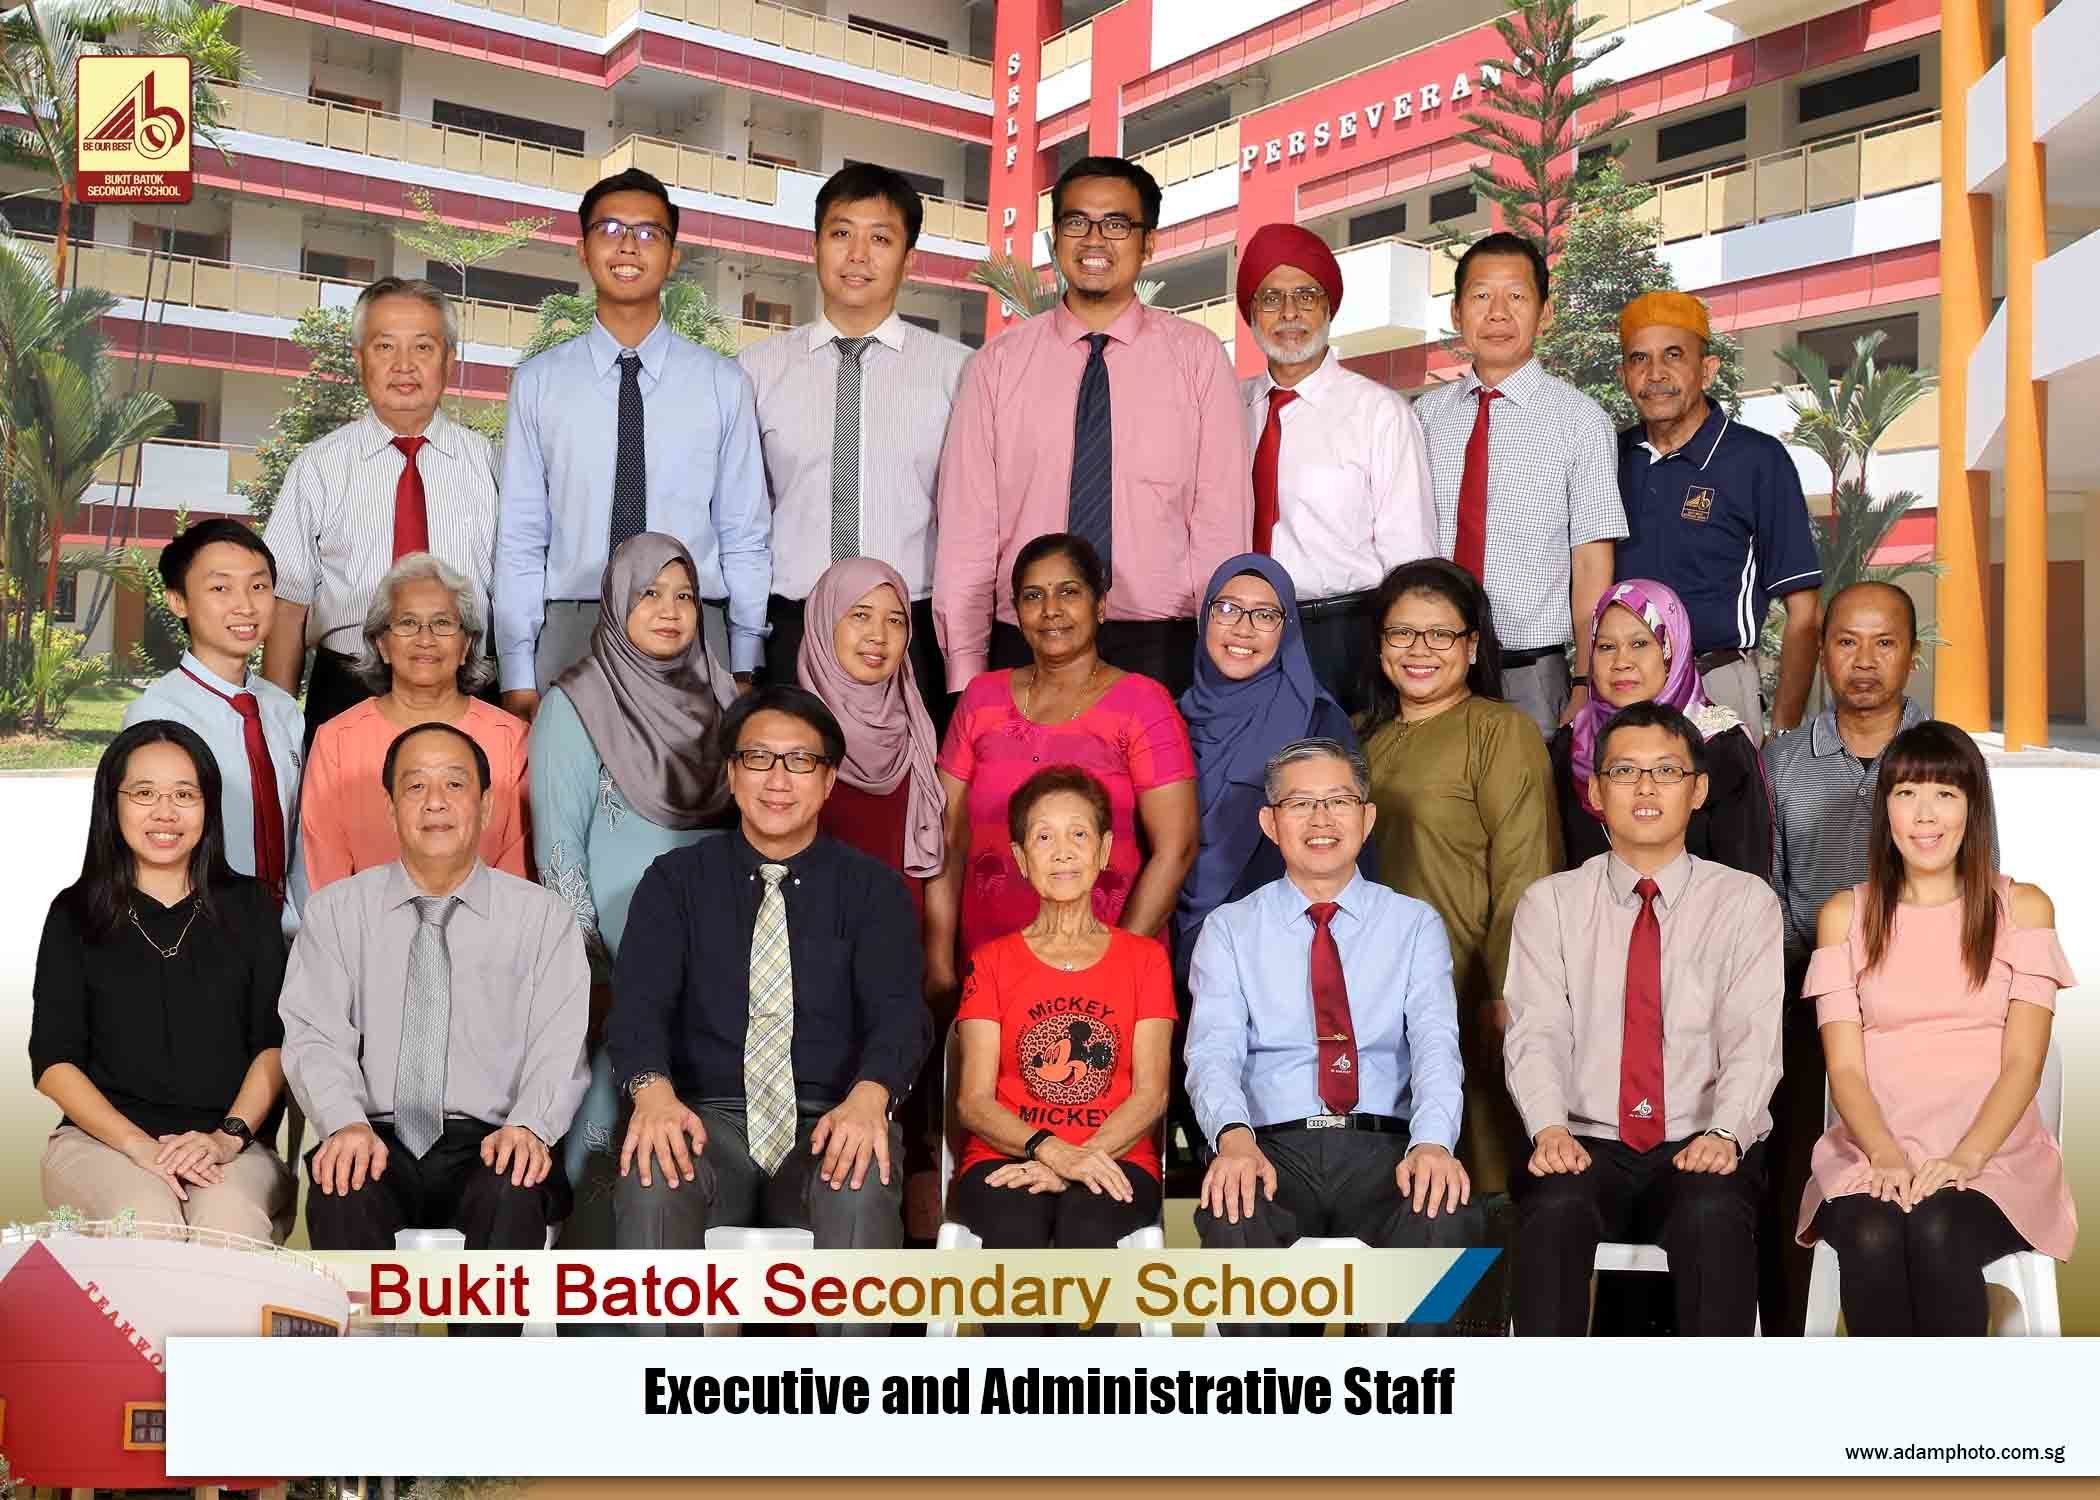 executive and administrative staff 2 (1).jpg